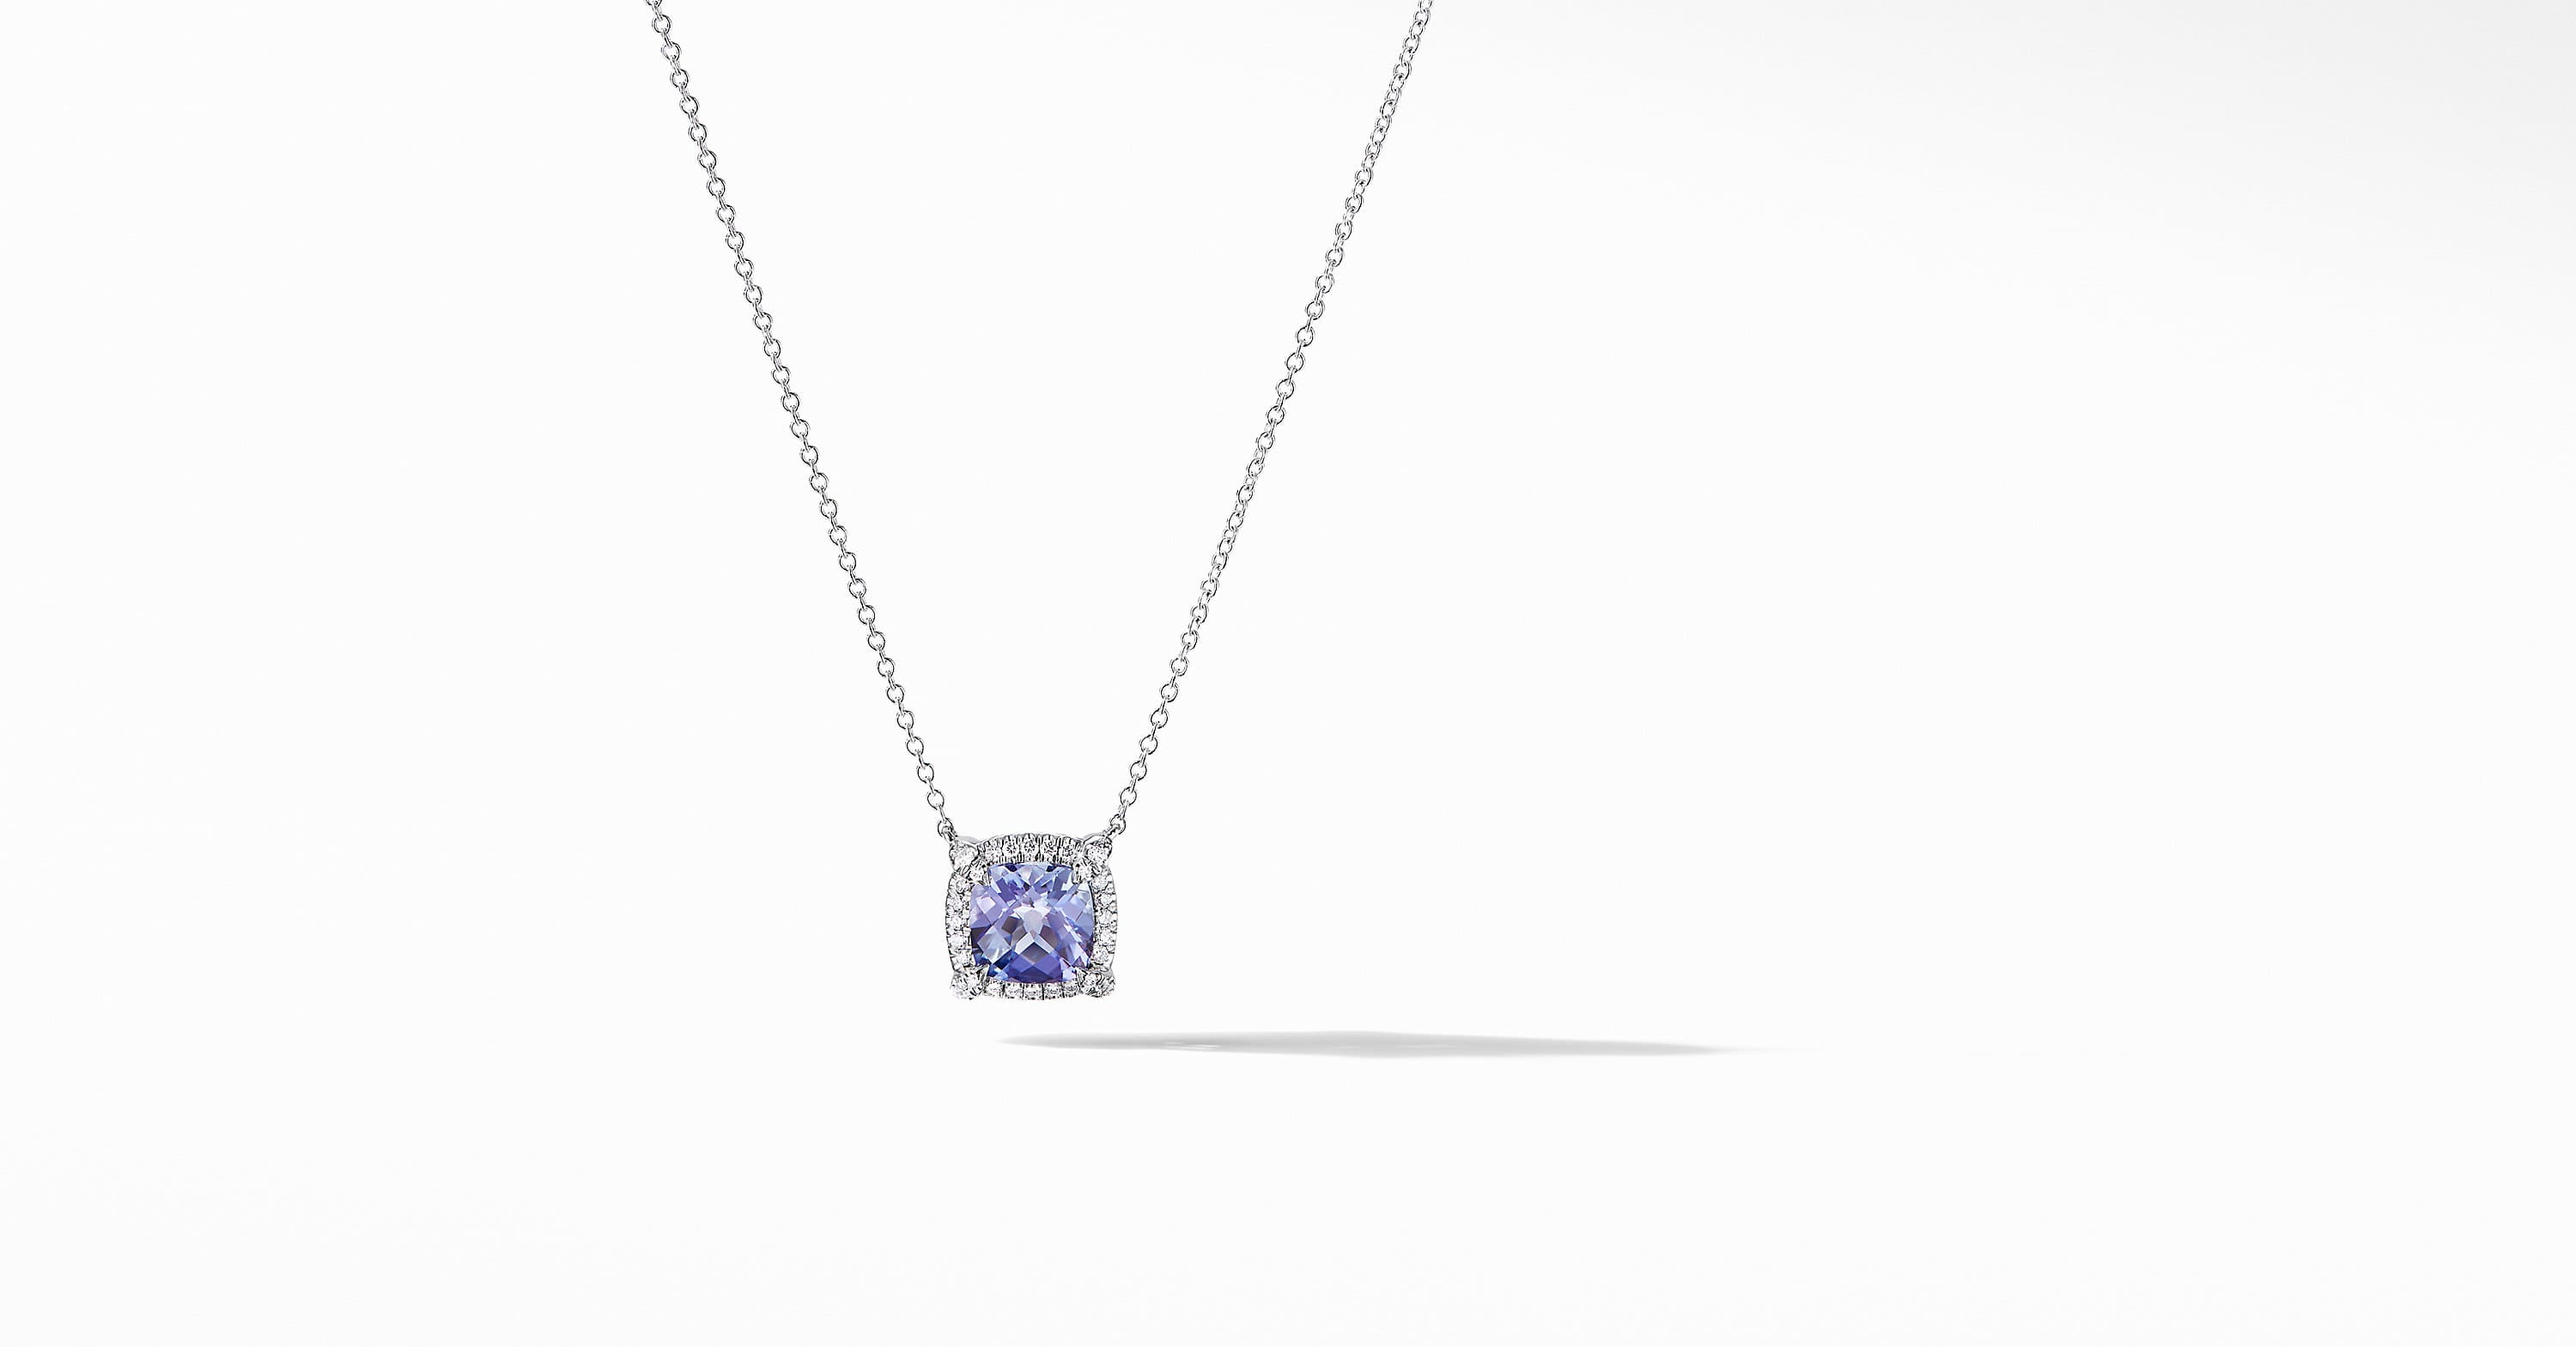 Petite Chatelaine Pavé Bezel Pendant Necklace in 18K White Gold, 7mm